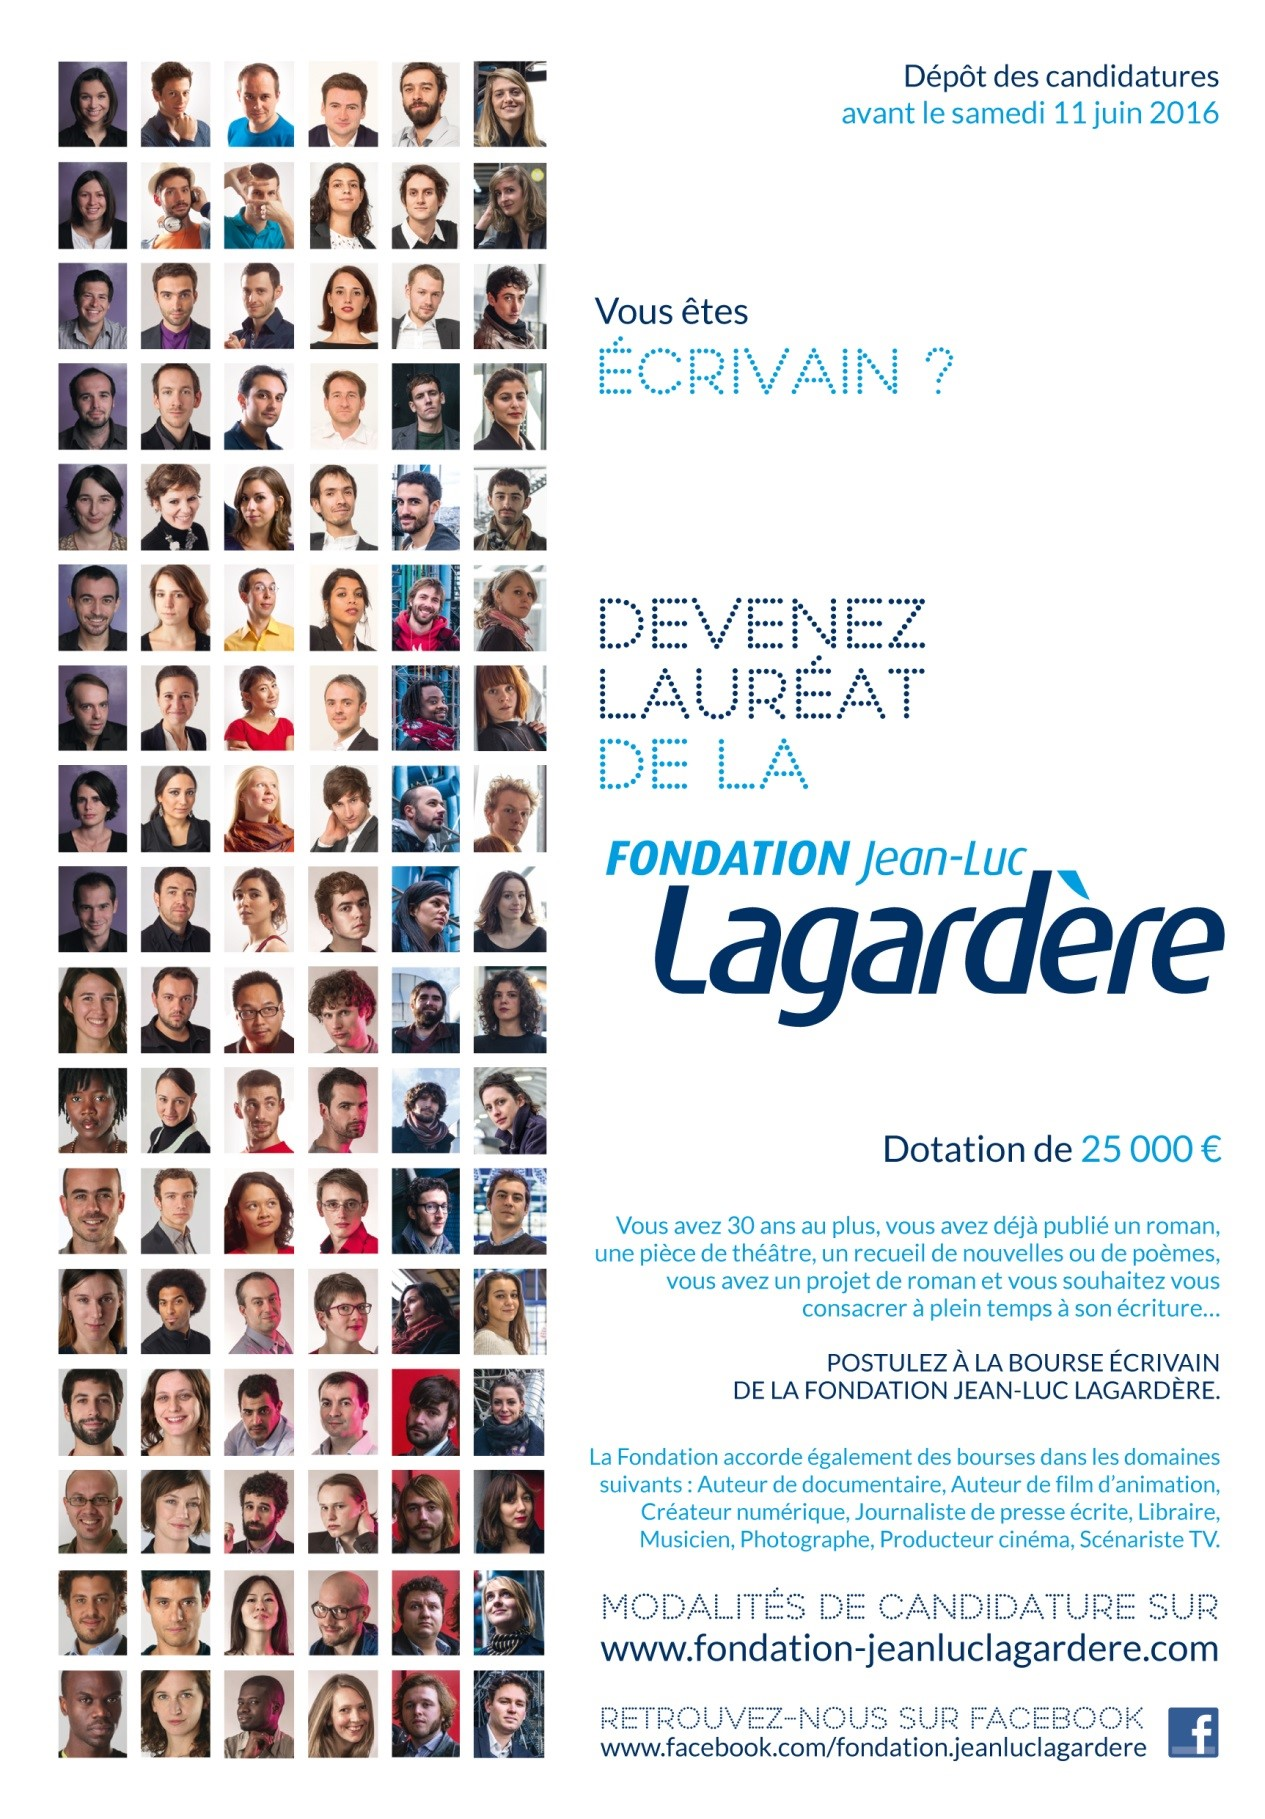 Fondation Lagardere